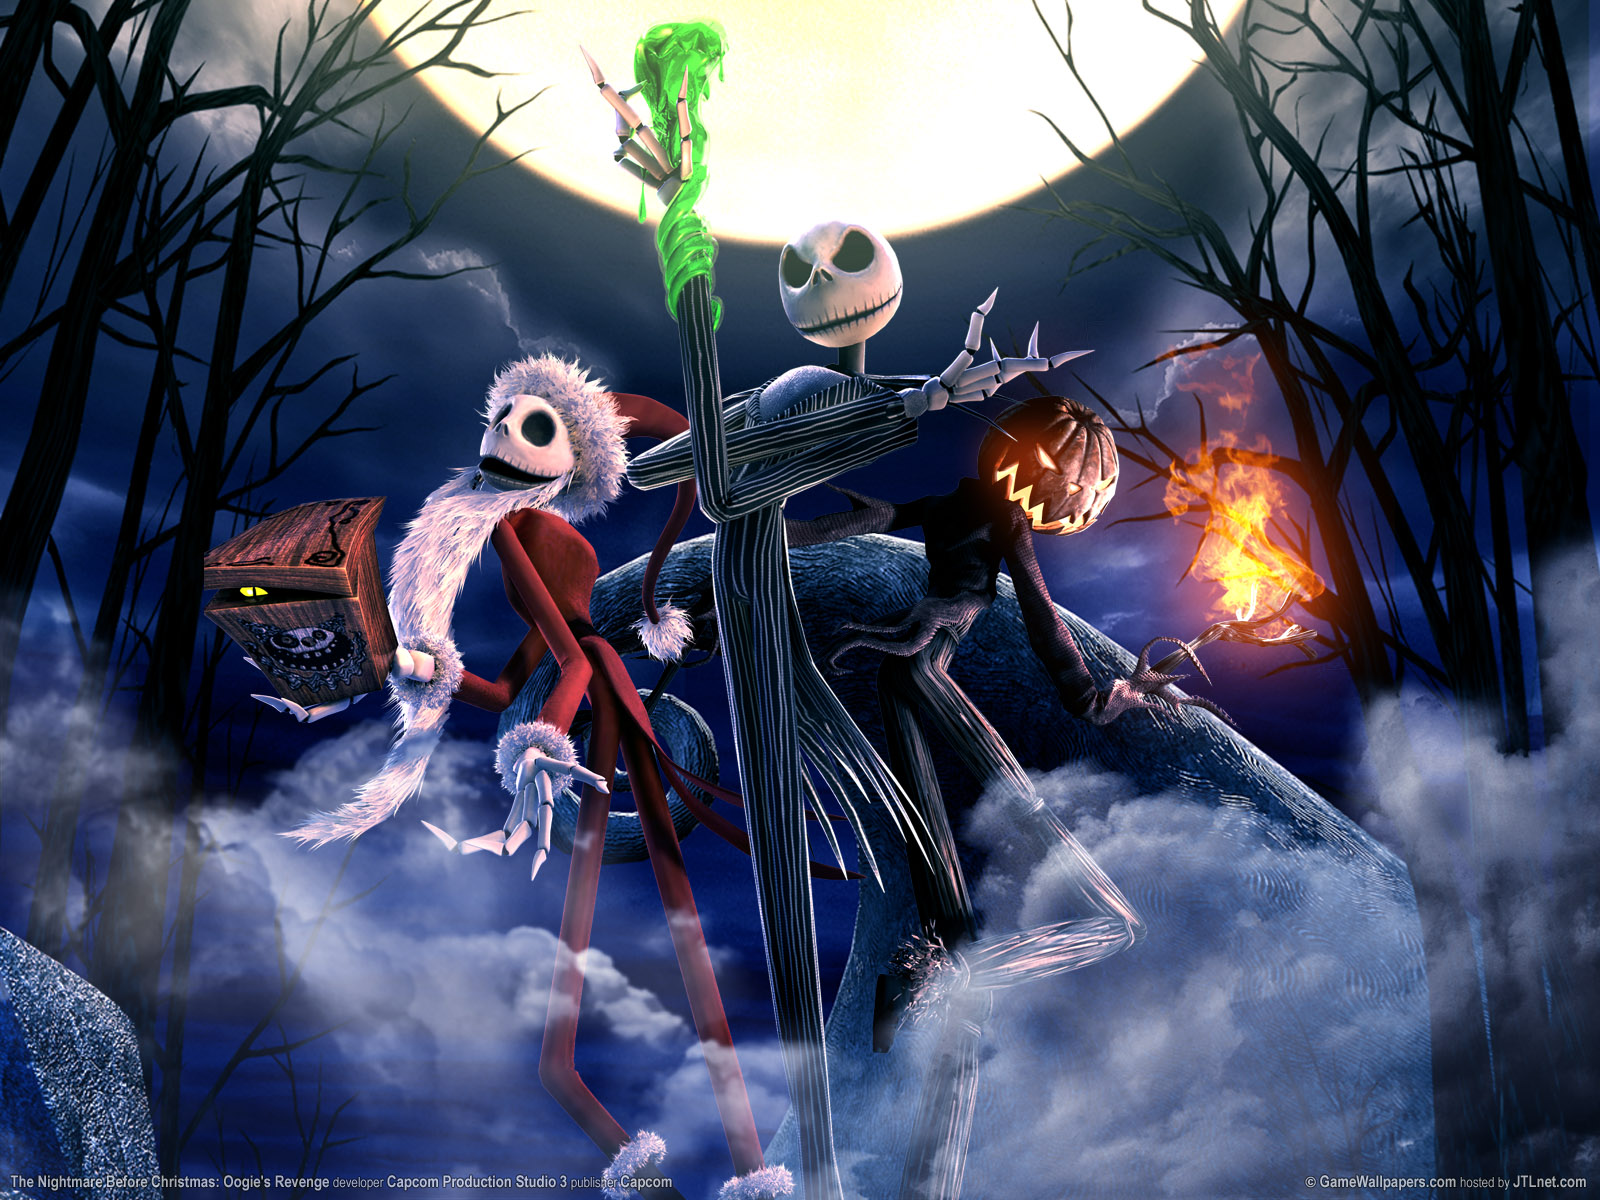 GAME]The Nightmare Before Christmas: Oogie's Revenge